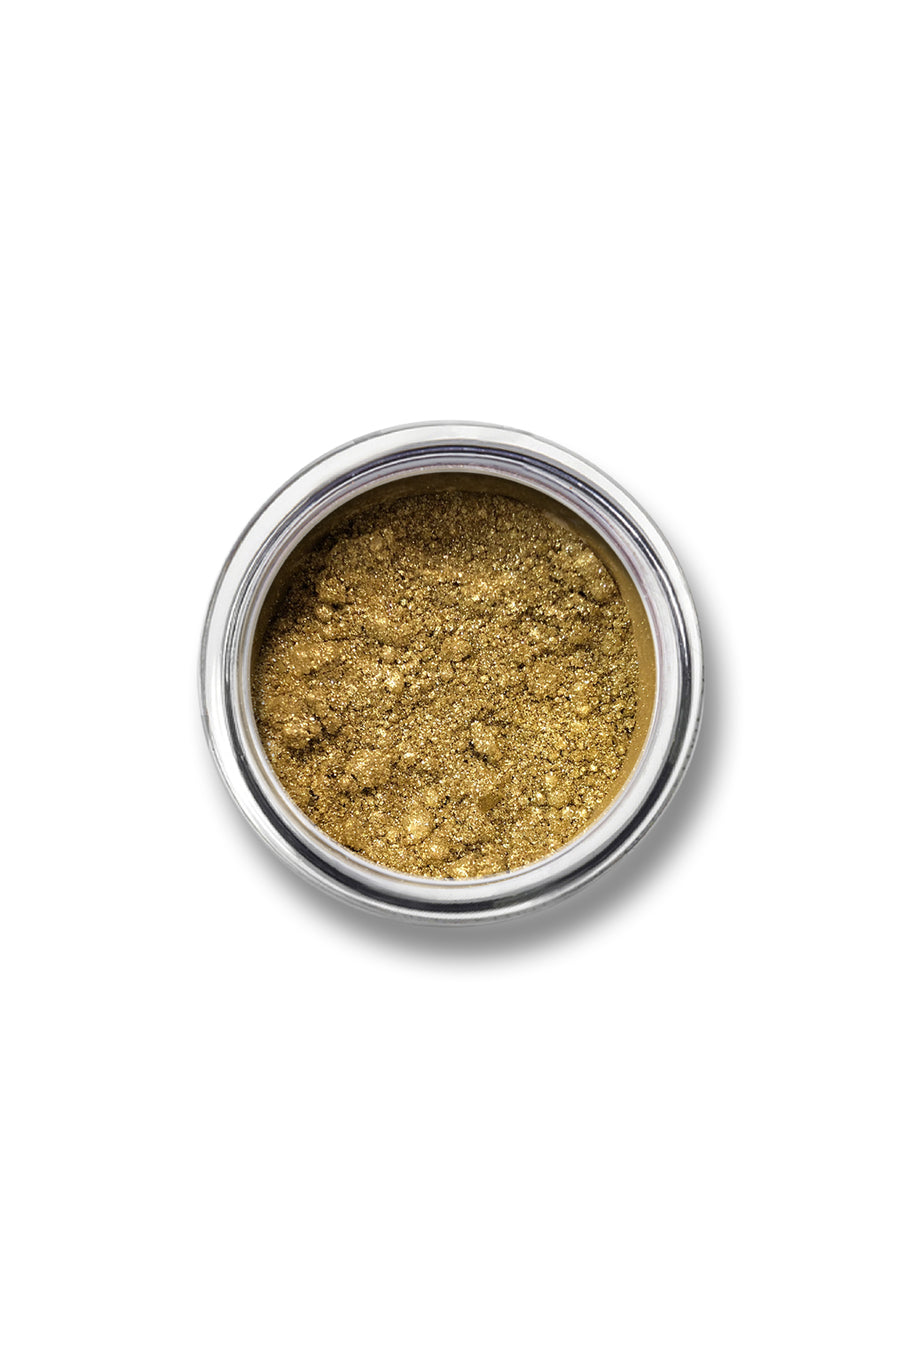 Shimmer Eyeshadow #56 - Retro - Blend Mineral Cosmetics